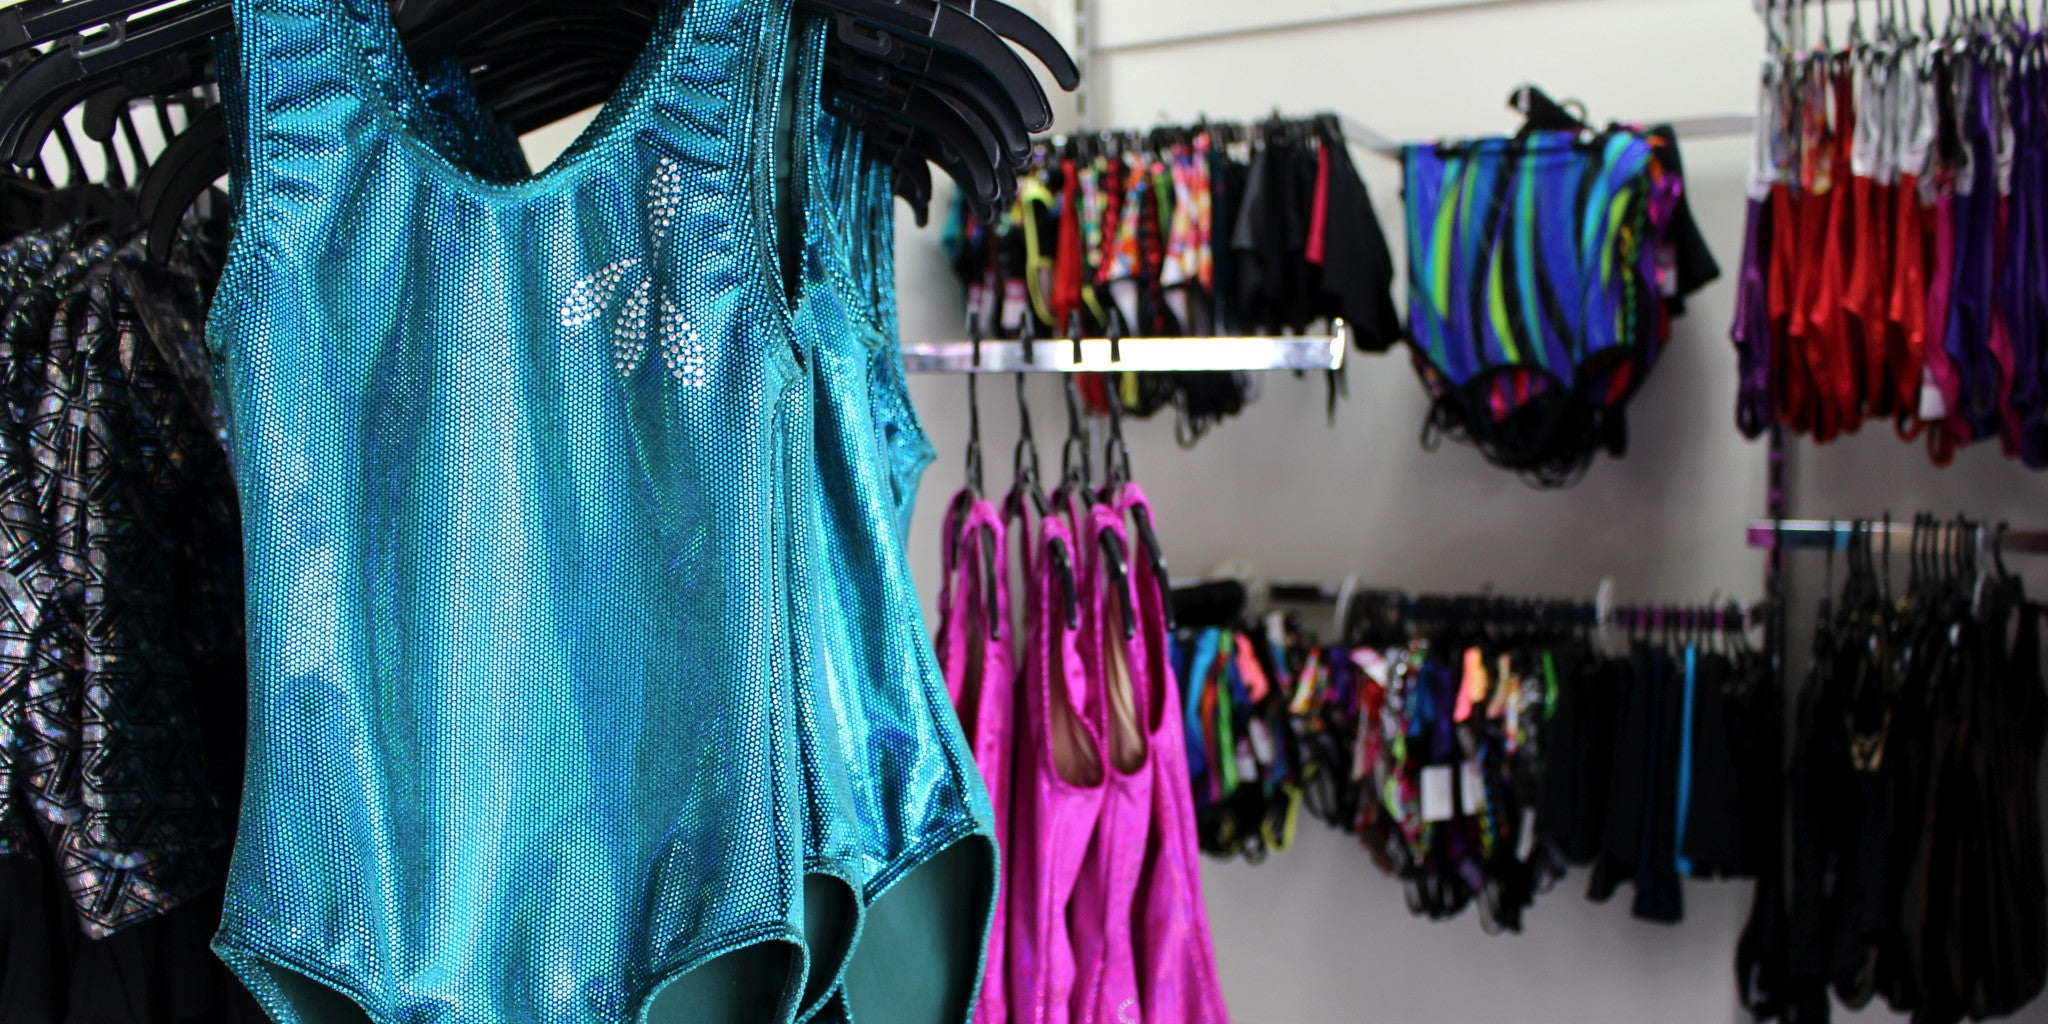 K-Lee Designs factory outlet store in Brisbane northside at Brendale showing a variety of gymnastics and dance gear